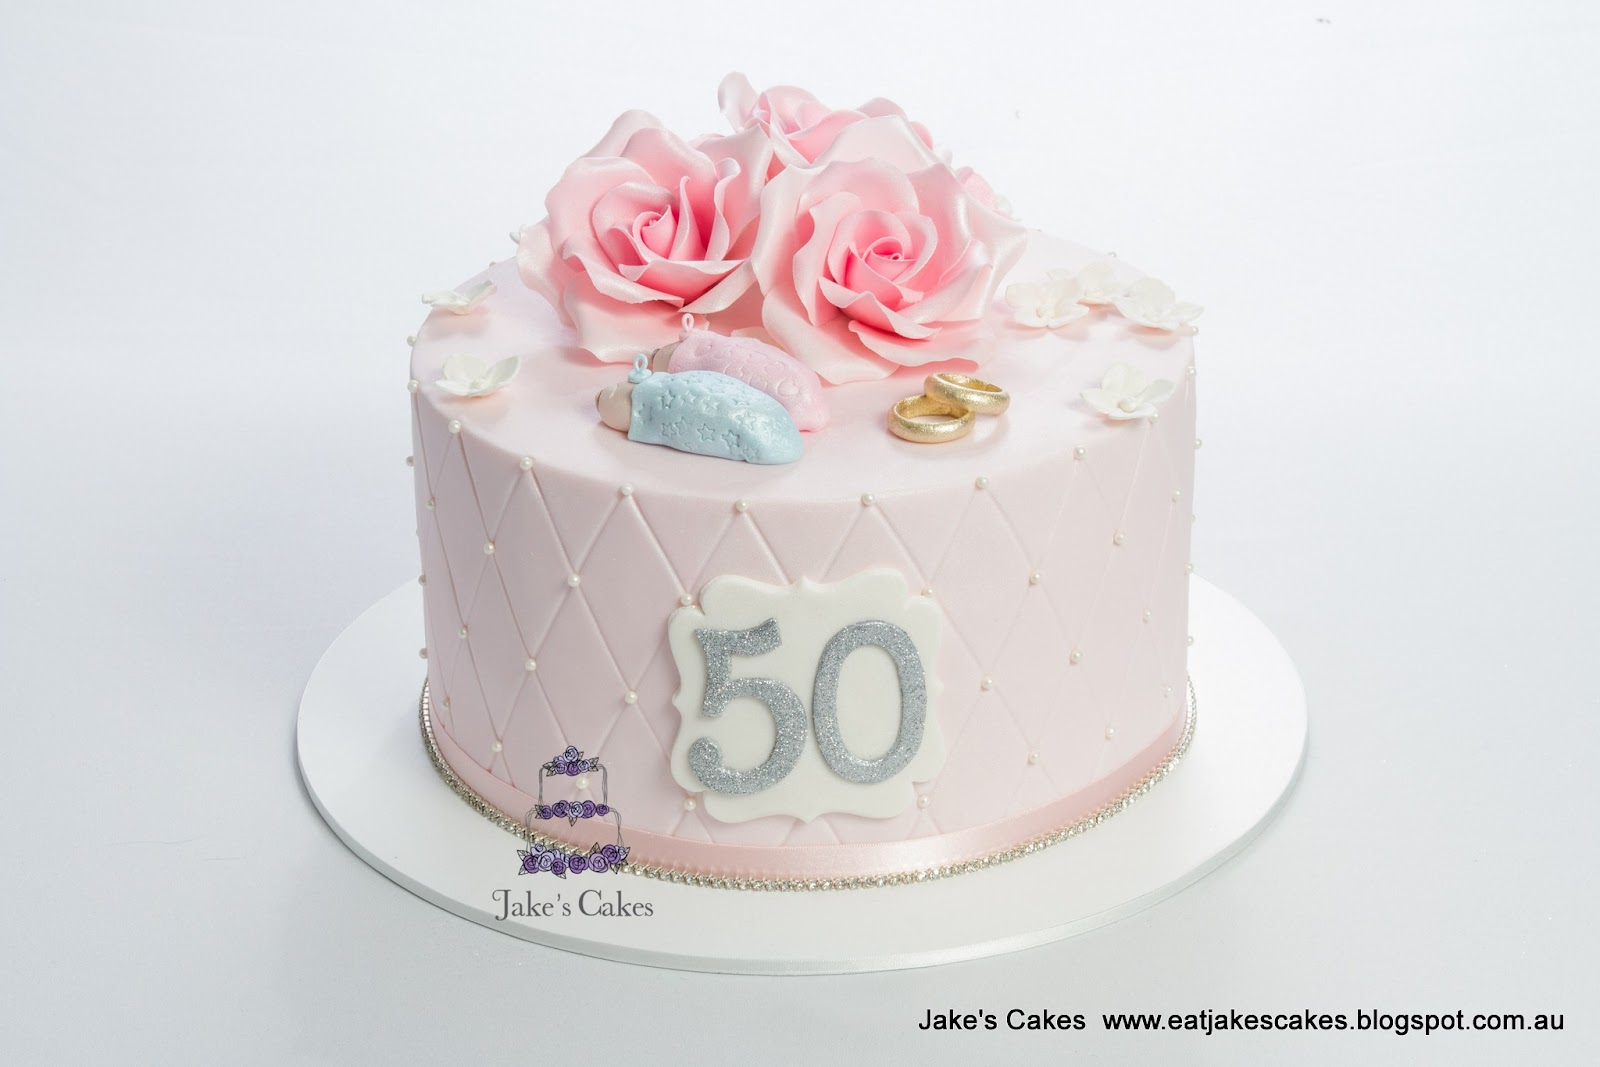 Jakes Cakes 50th Birthday Cake